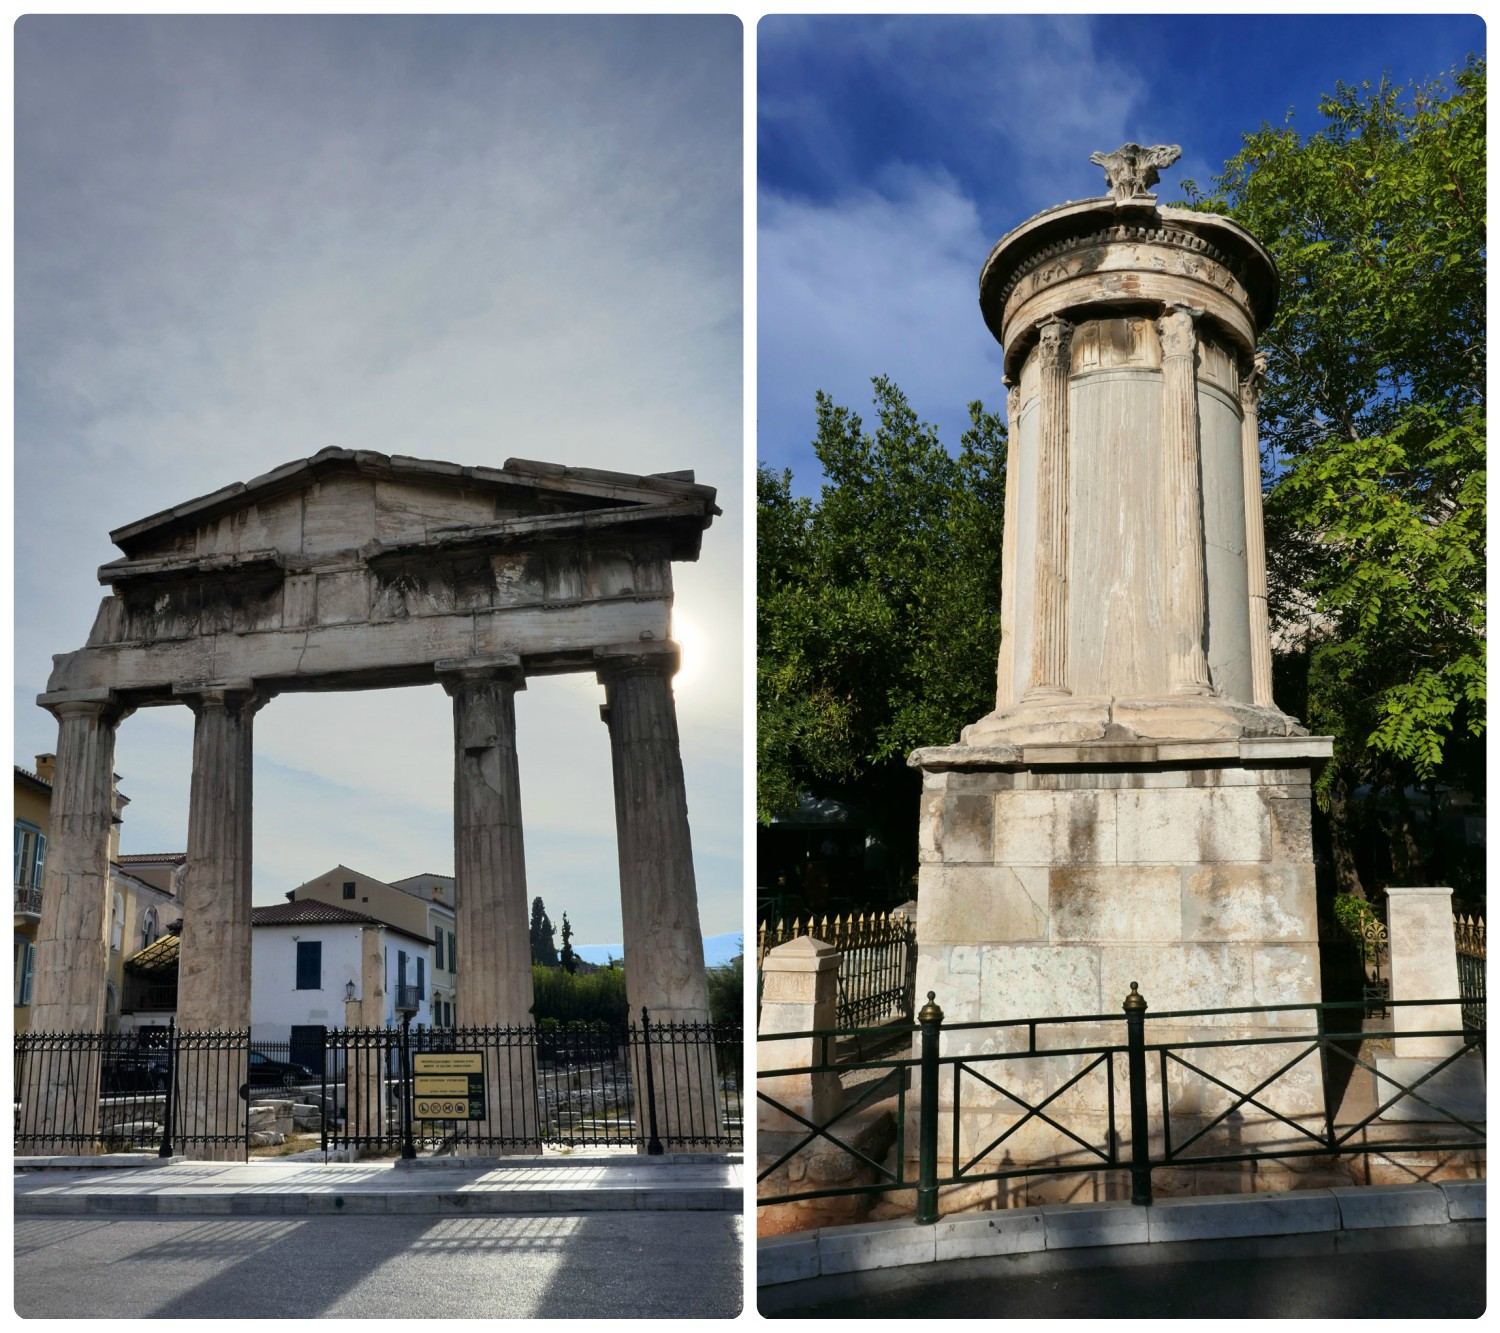 In addition to exploring Plaka neighborhood, you can also see the Roman Agora ancient ruin (left image) and the Monument to Lysikratous (right image).